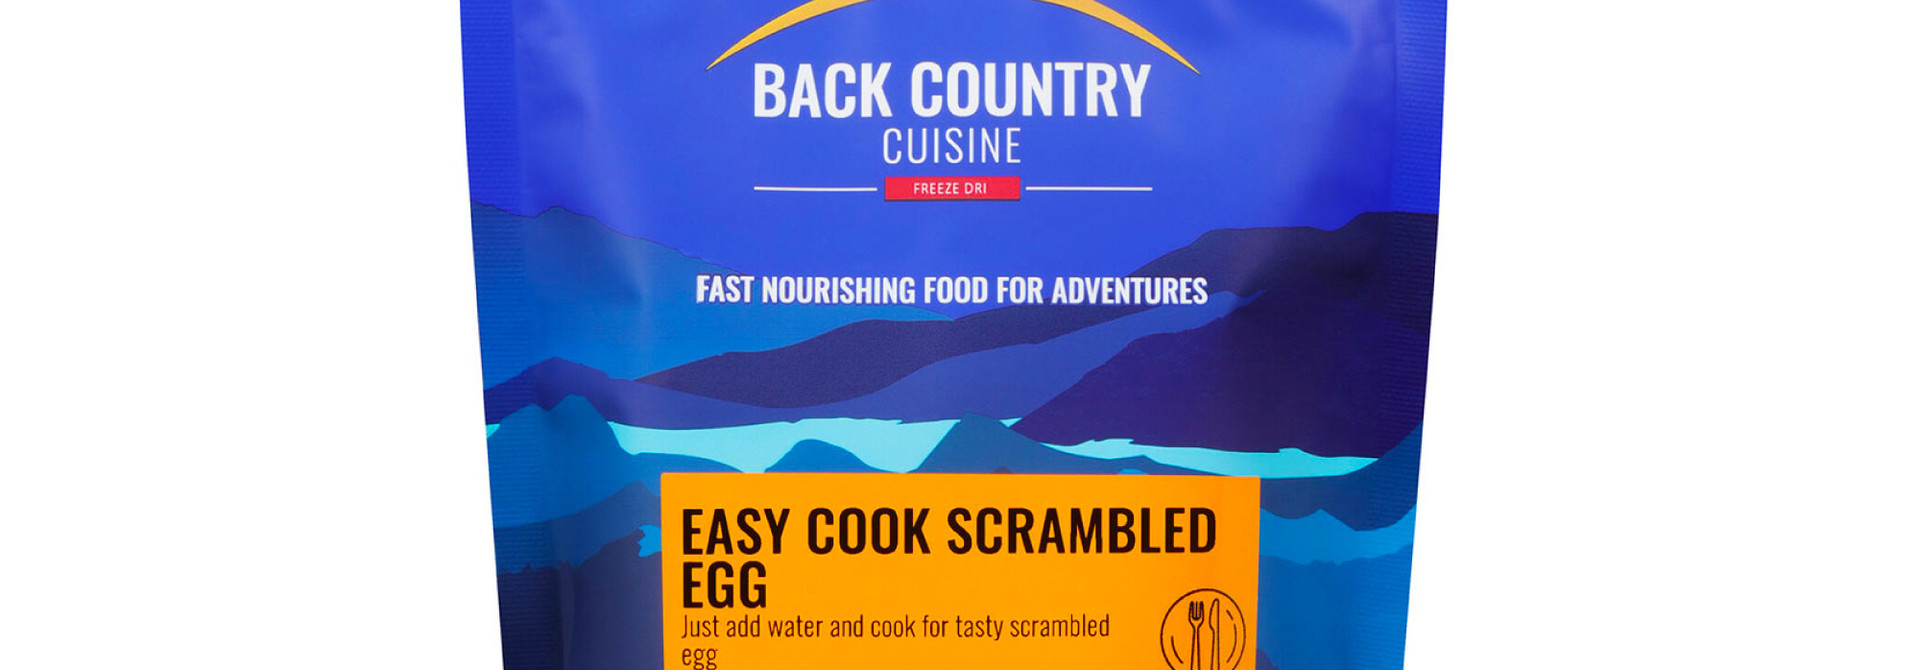 Back Country Cuisine Easy Cook Scrambled Egg Family